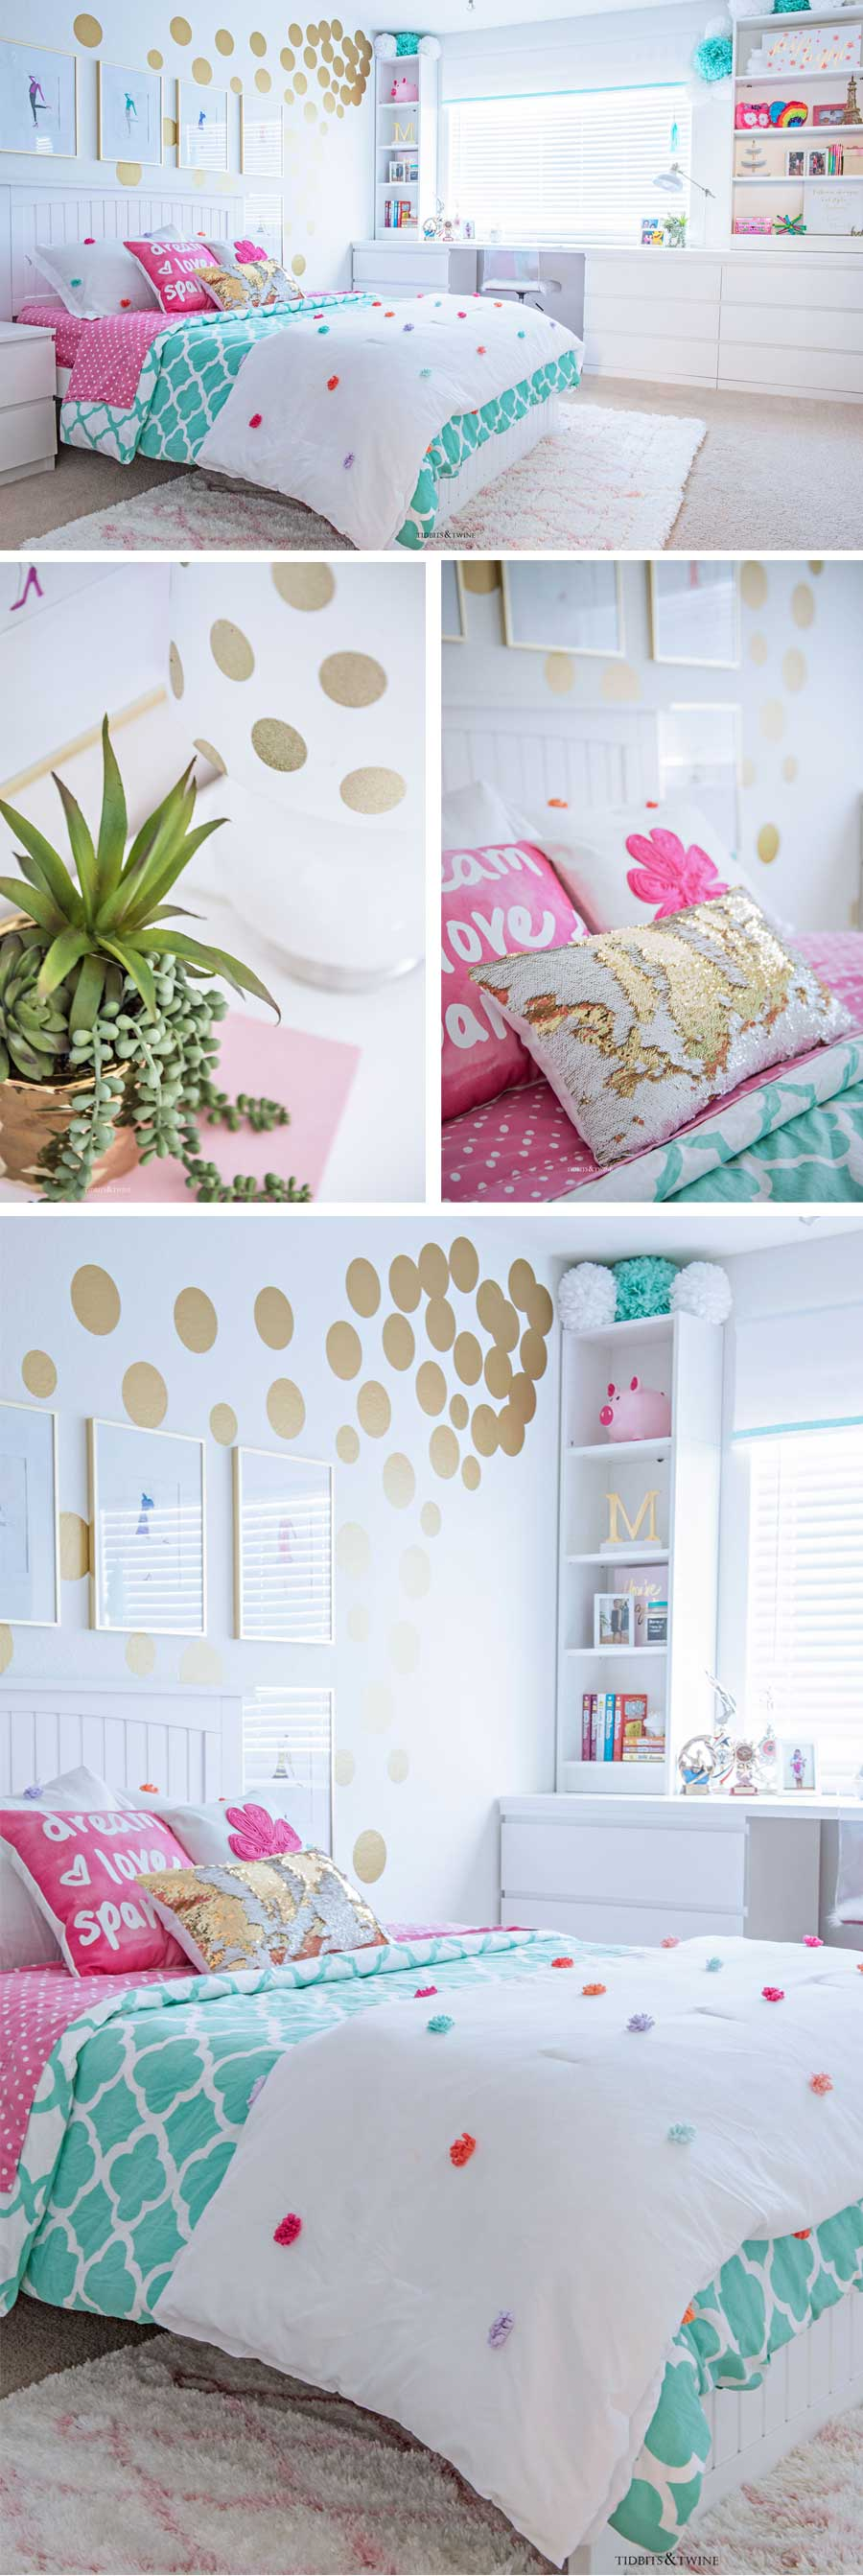 contemporary teen girl bedroom with white IKEA furniture and pops of turquoise gold and pink